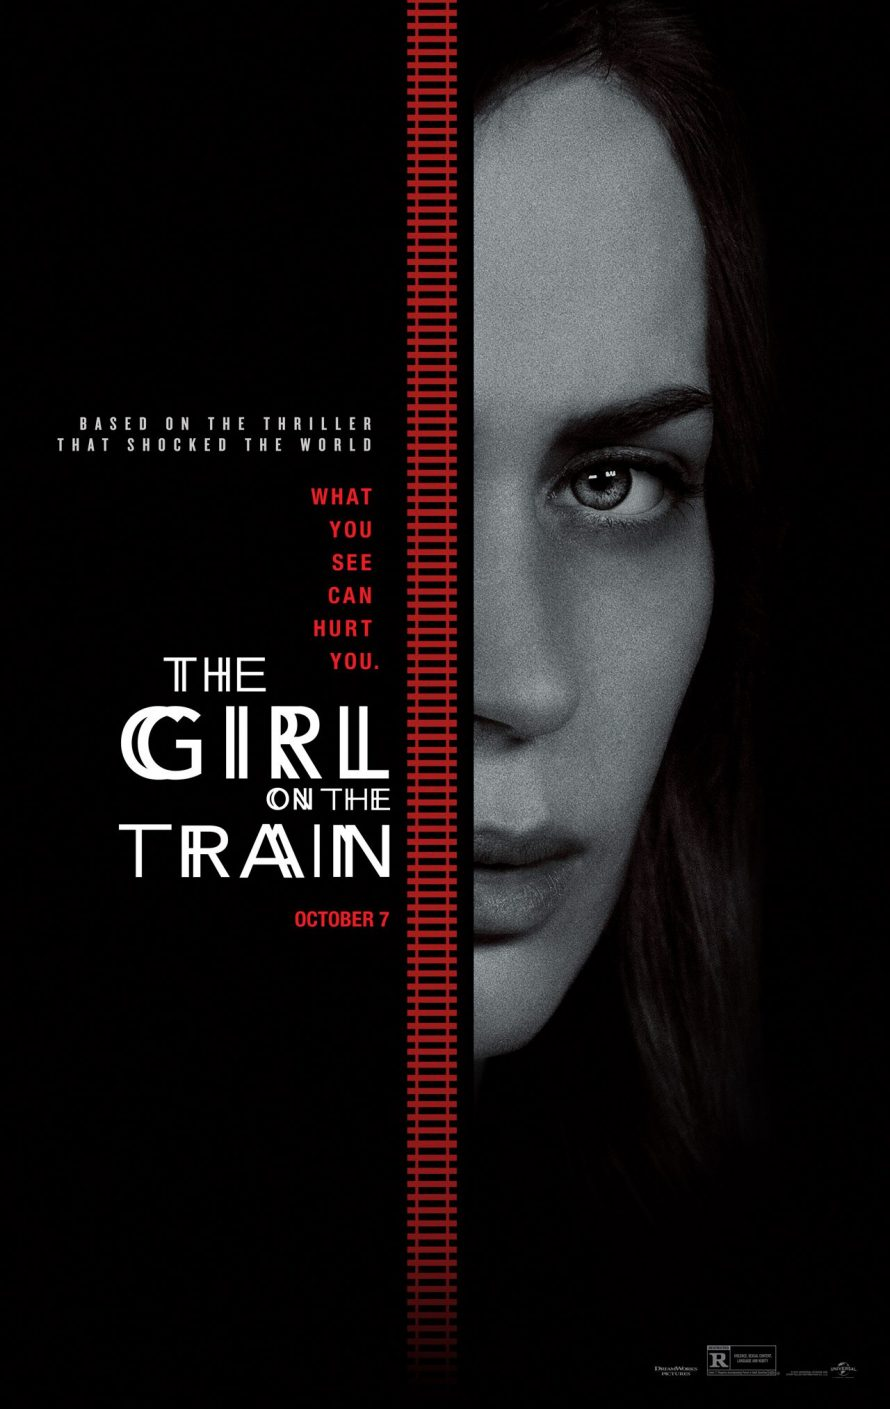 Modern Times Film: The Girl on the Train